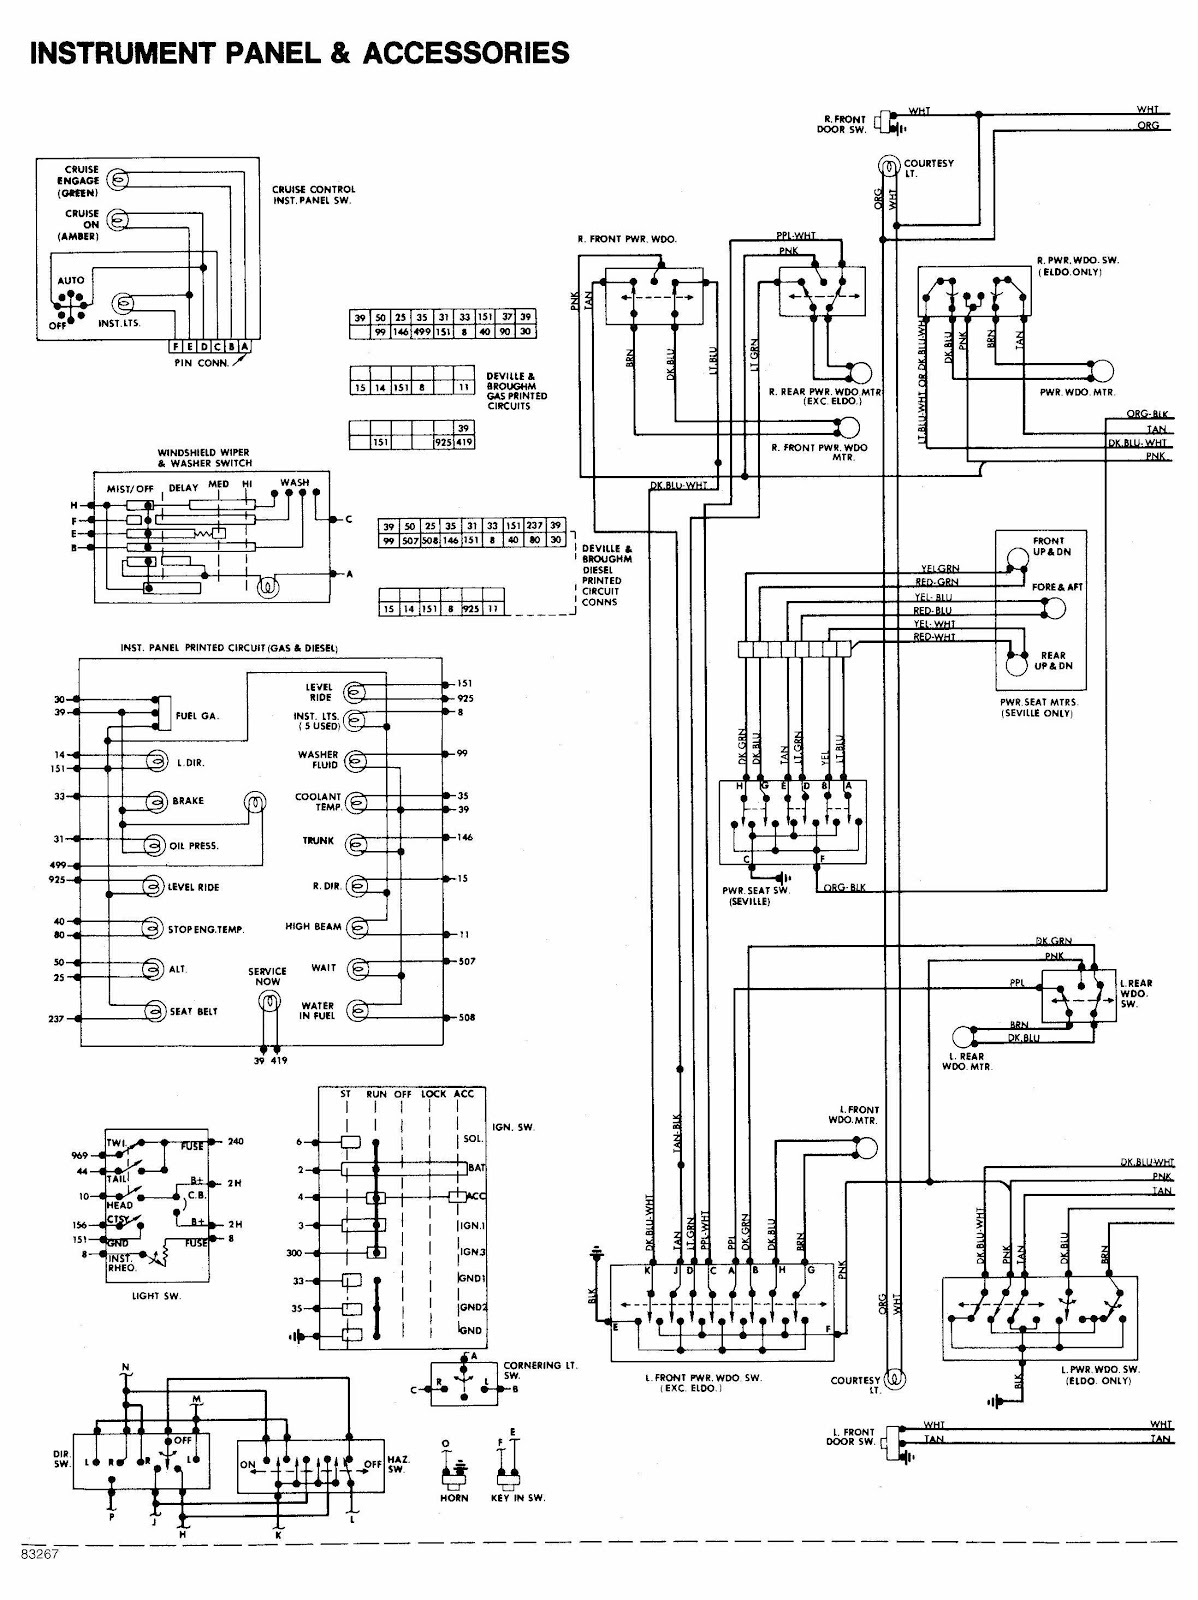 cadillac de ville 1984 instrument panel and accessories wiring diagram